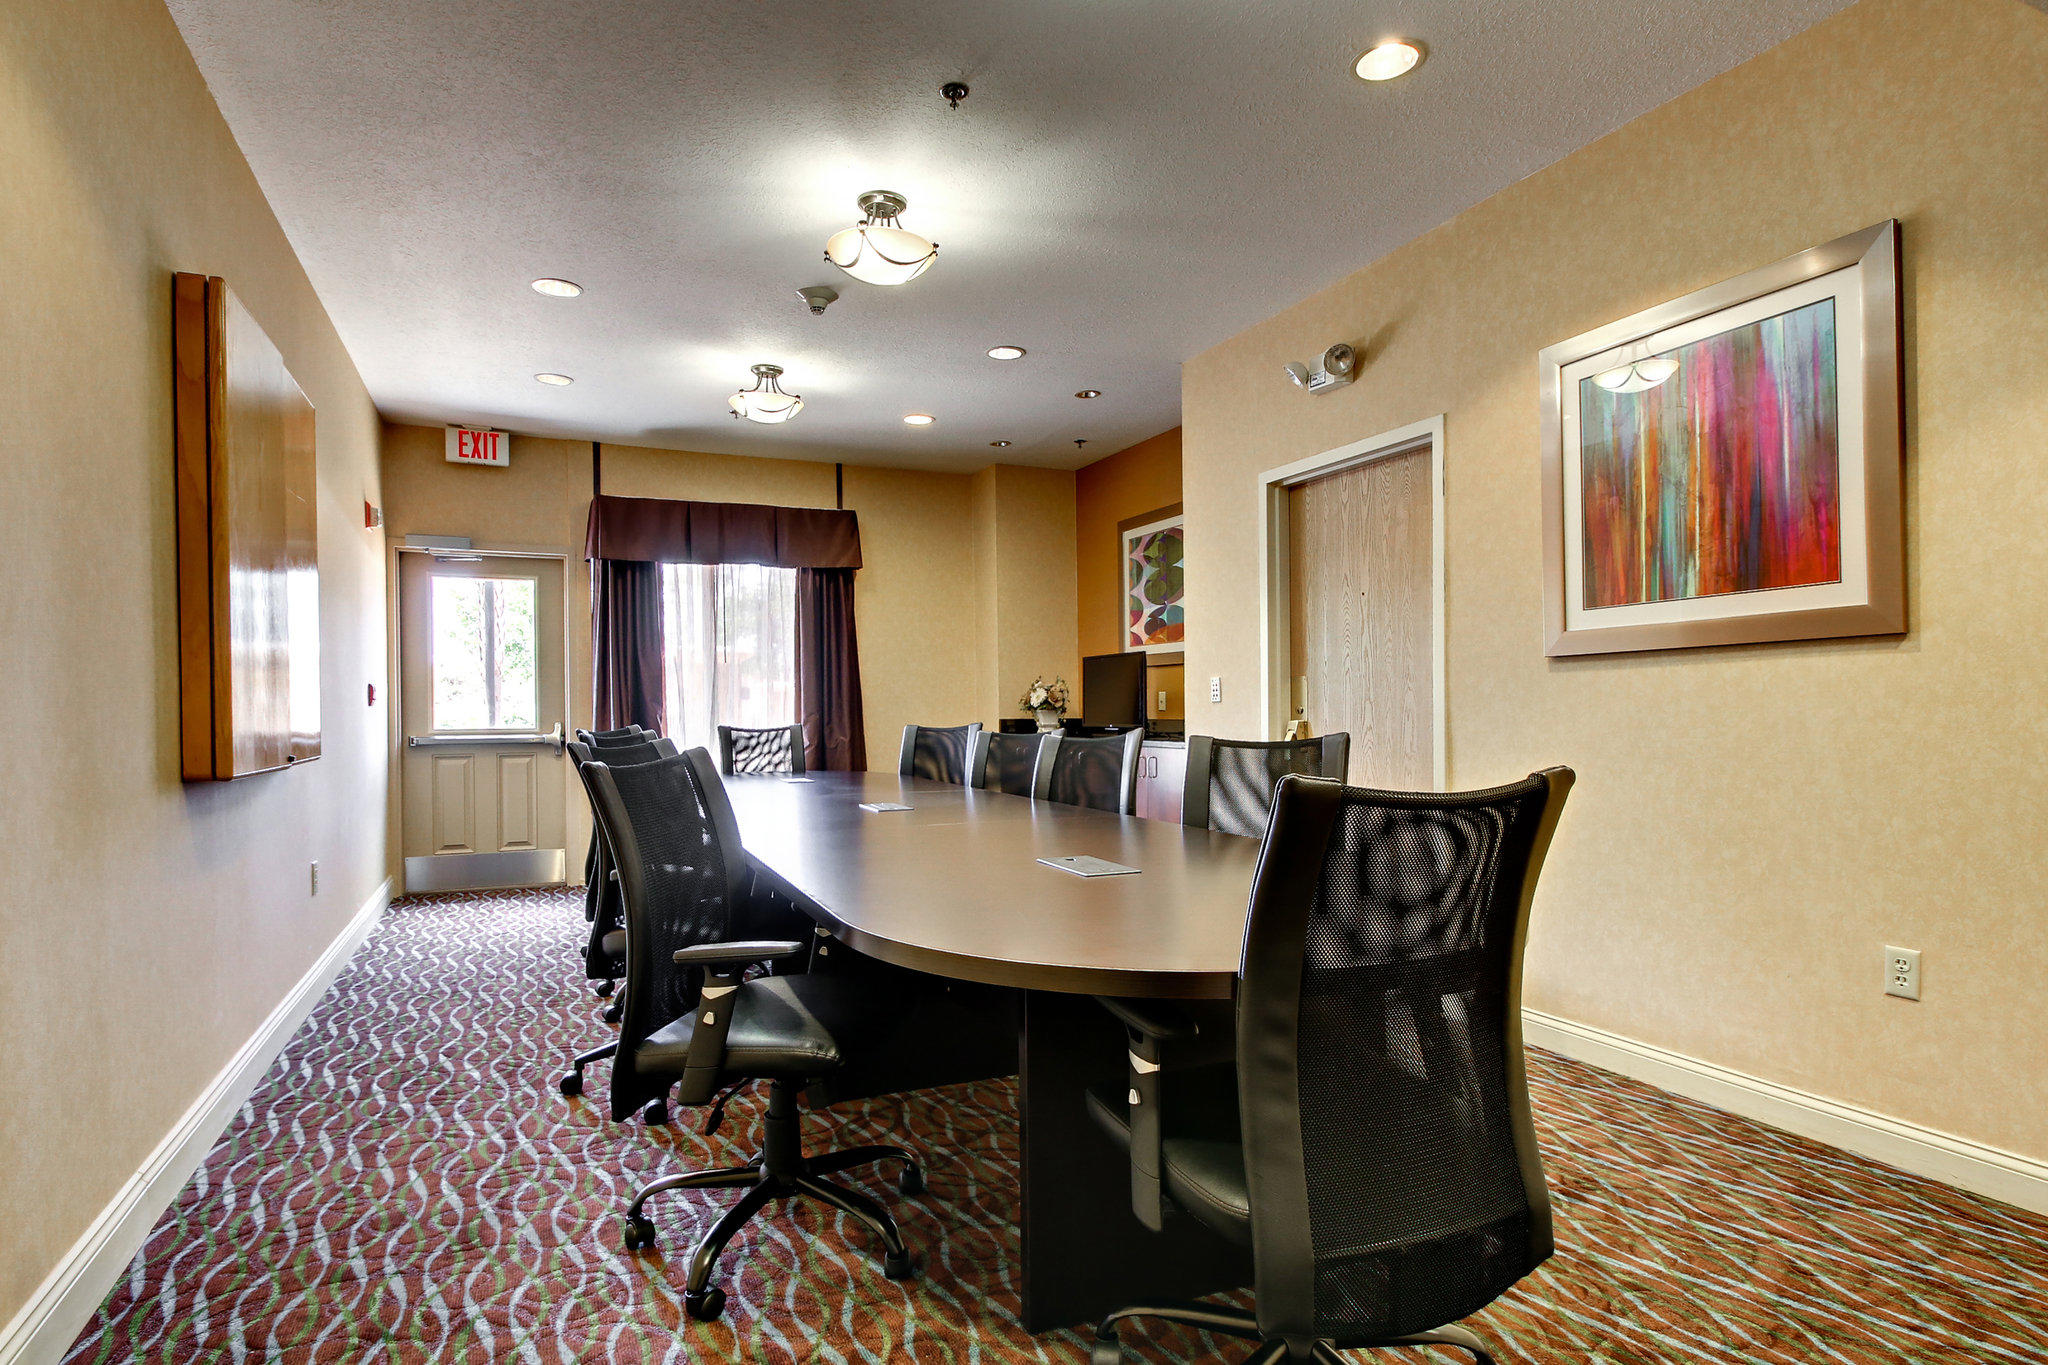 Holiday Inn Express & Suites Jacksonville South - I-295, an IHG Hotel